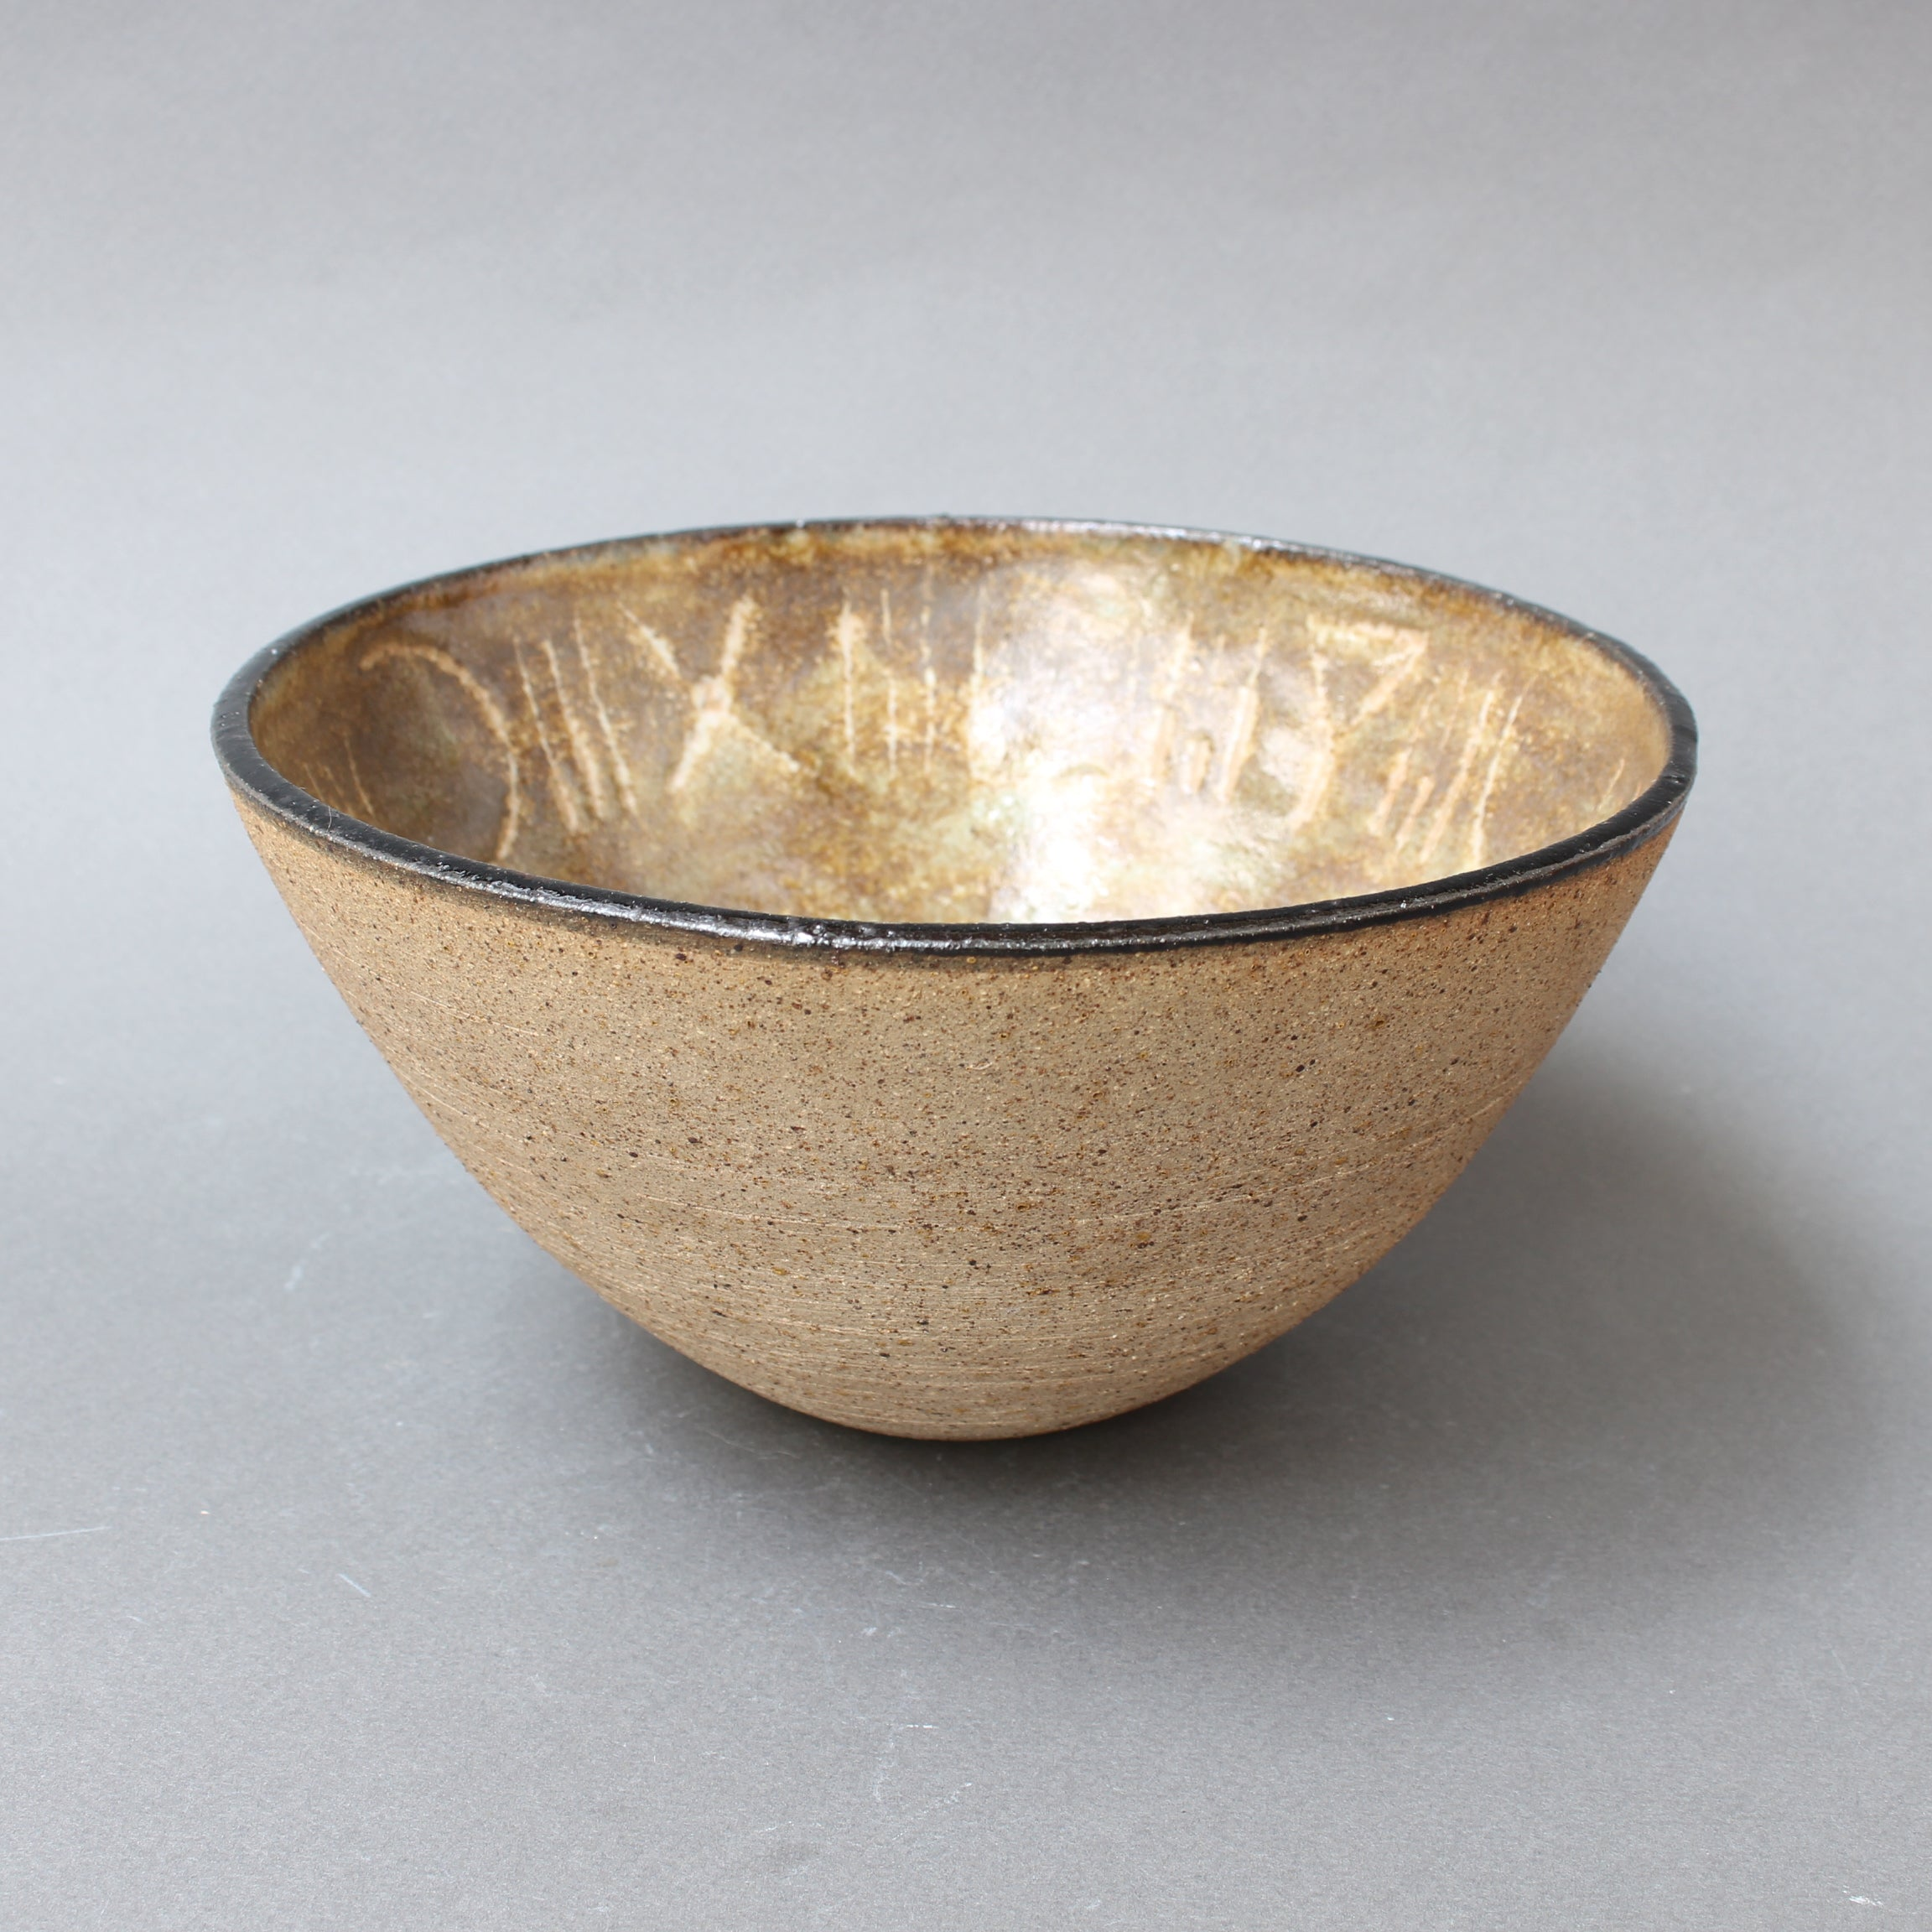 Ceramic Decorative Bowl by Bruno Gambone (circa 1990s)